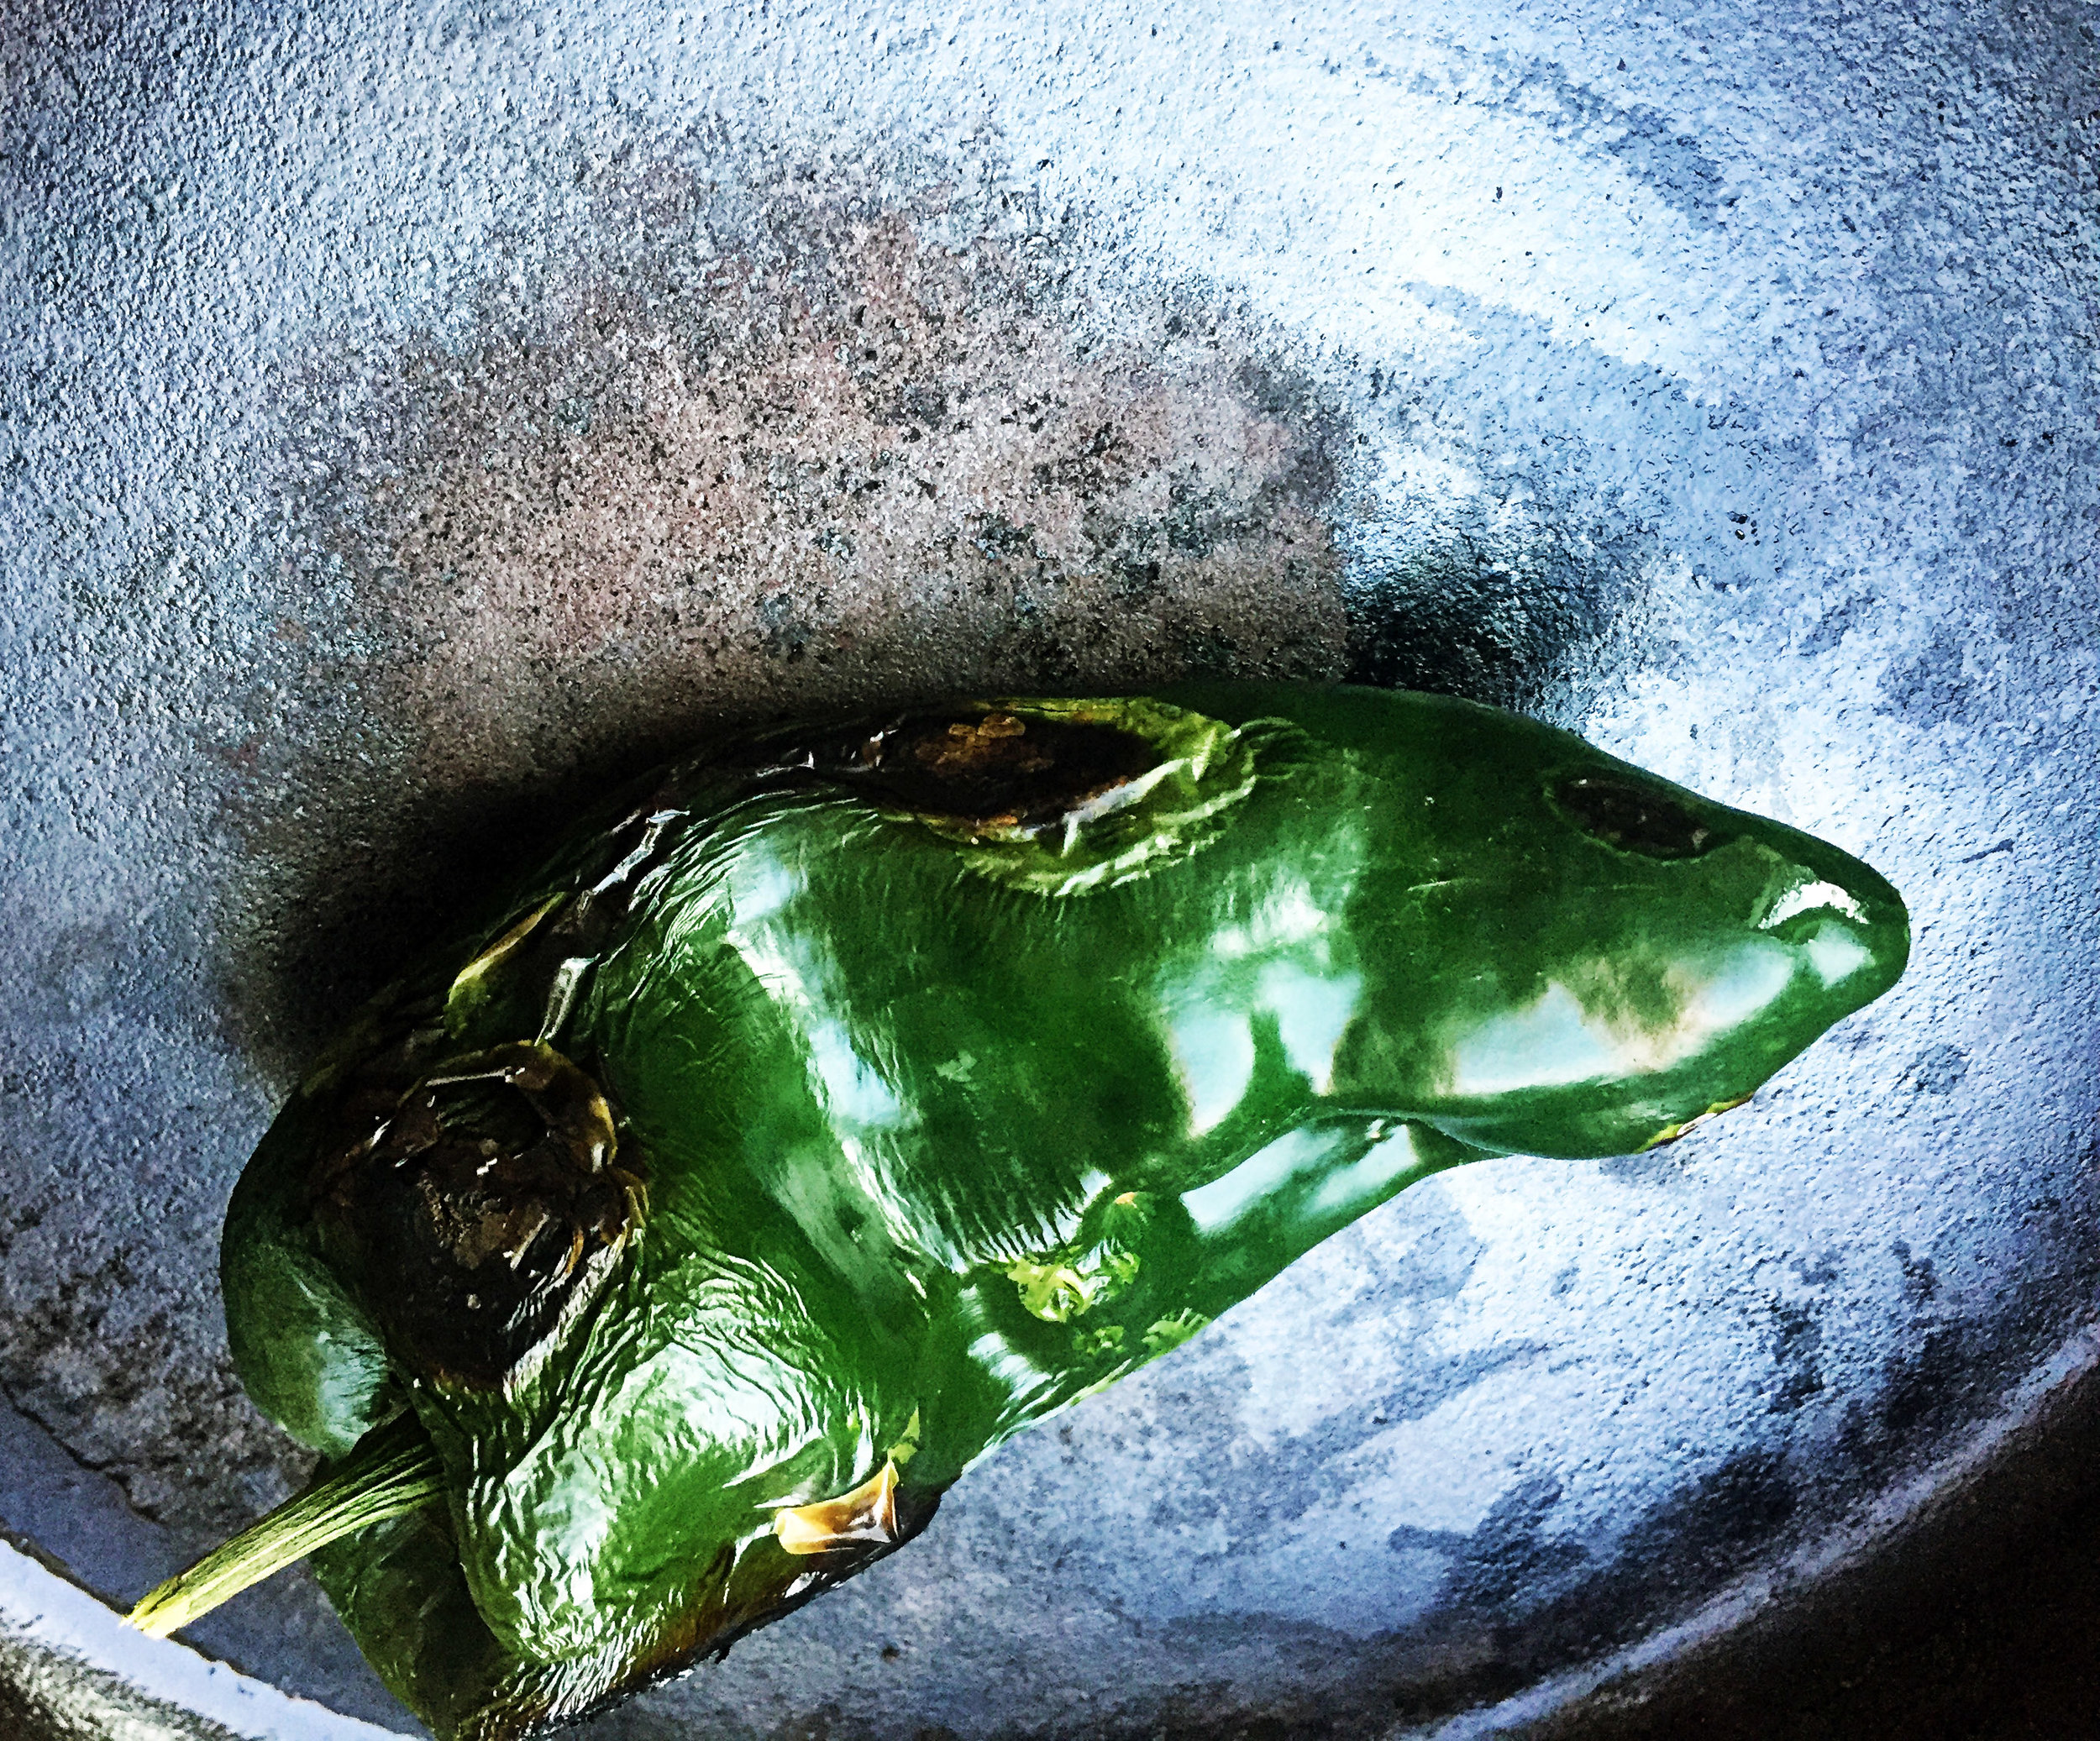 2. Add poblano to a dry castiron or regular pan over medium-high heat. Char on each side for 2-3 minutes and rotate until have good char on each side. Use a dishcloth to handle. Be careful!